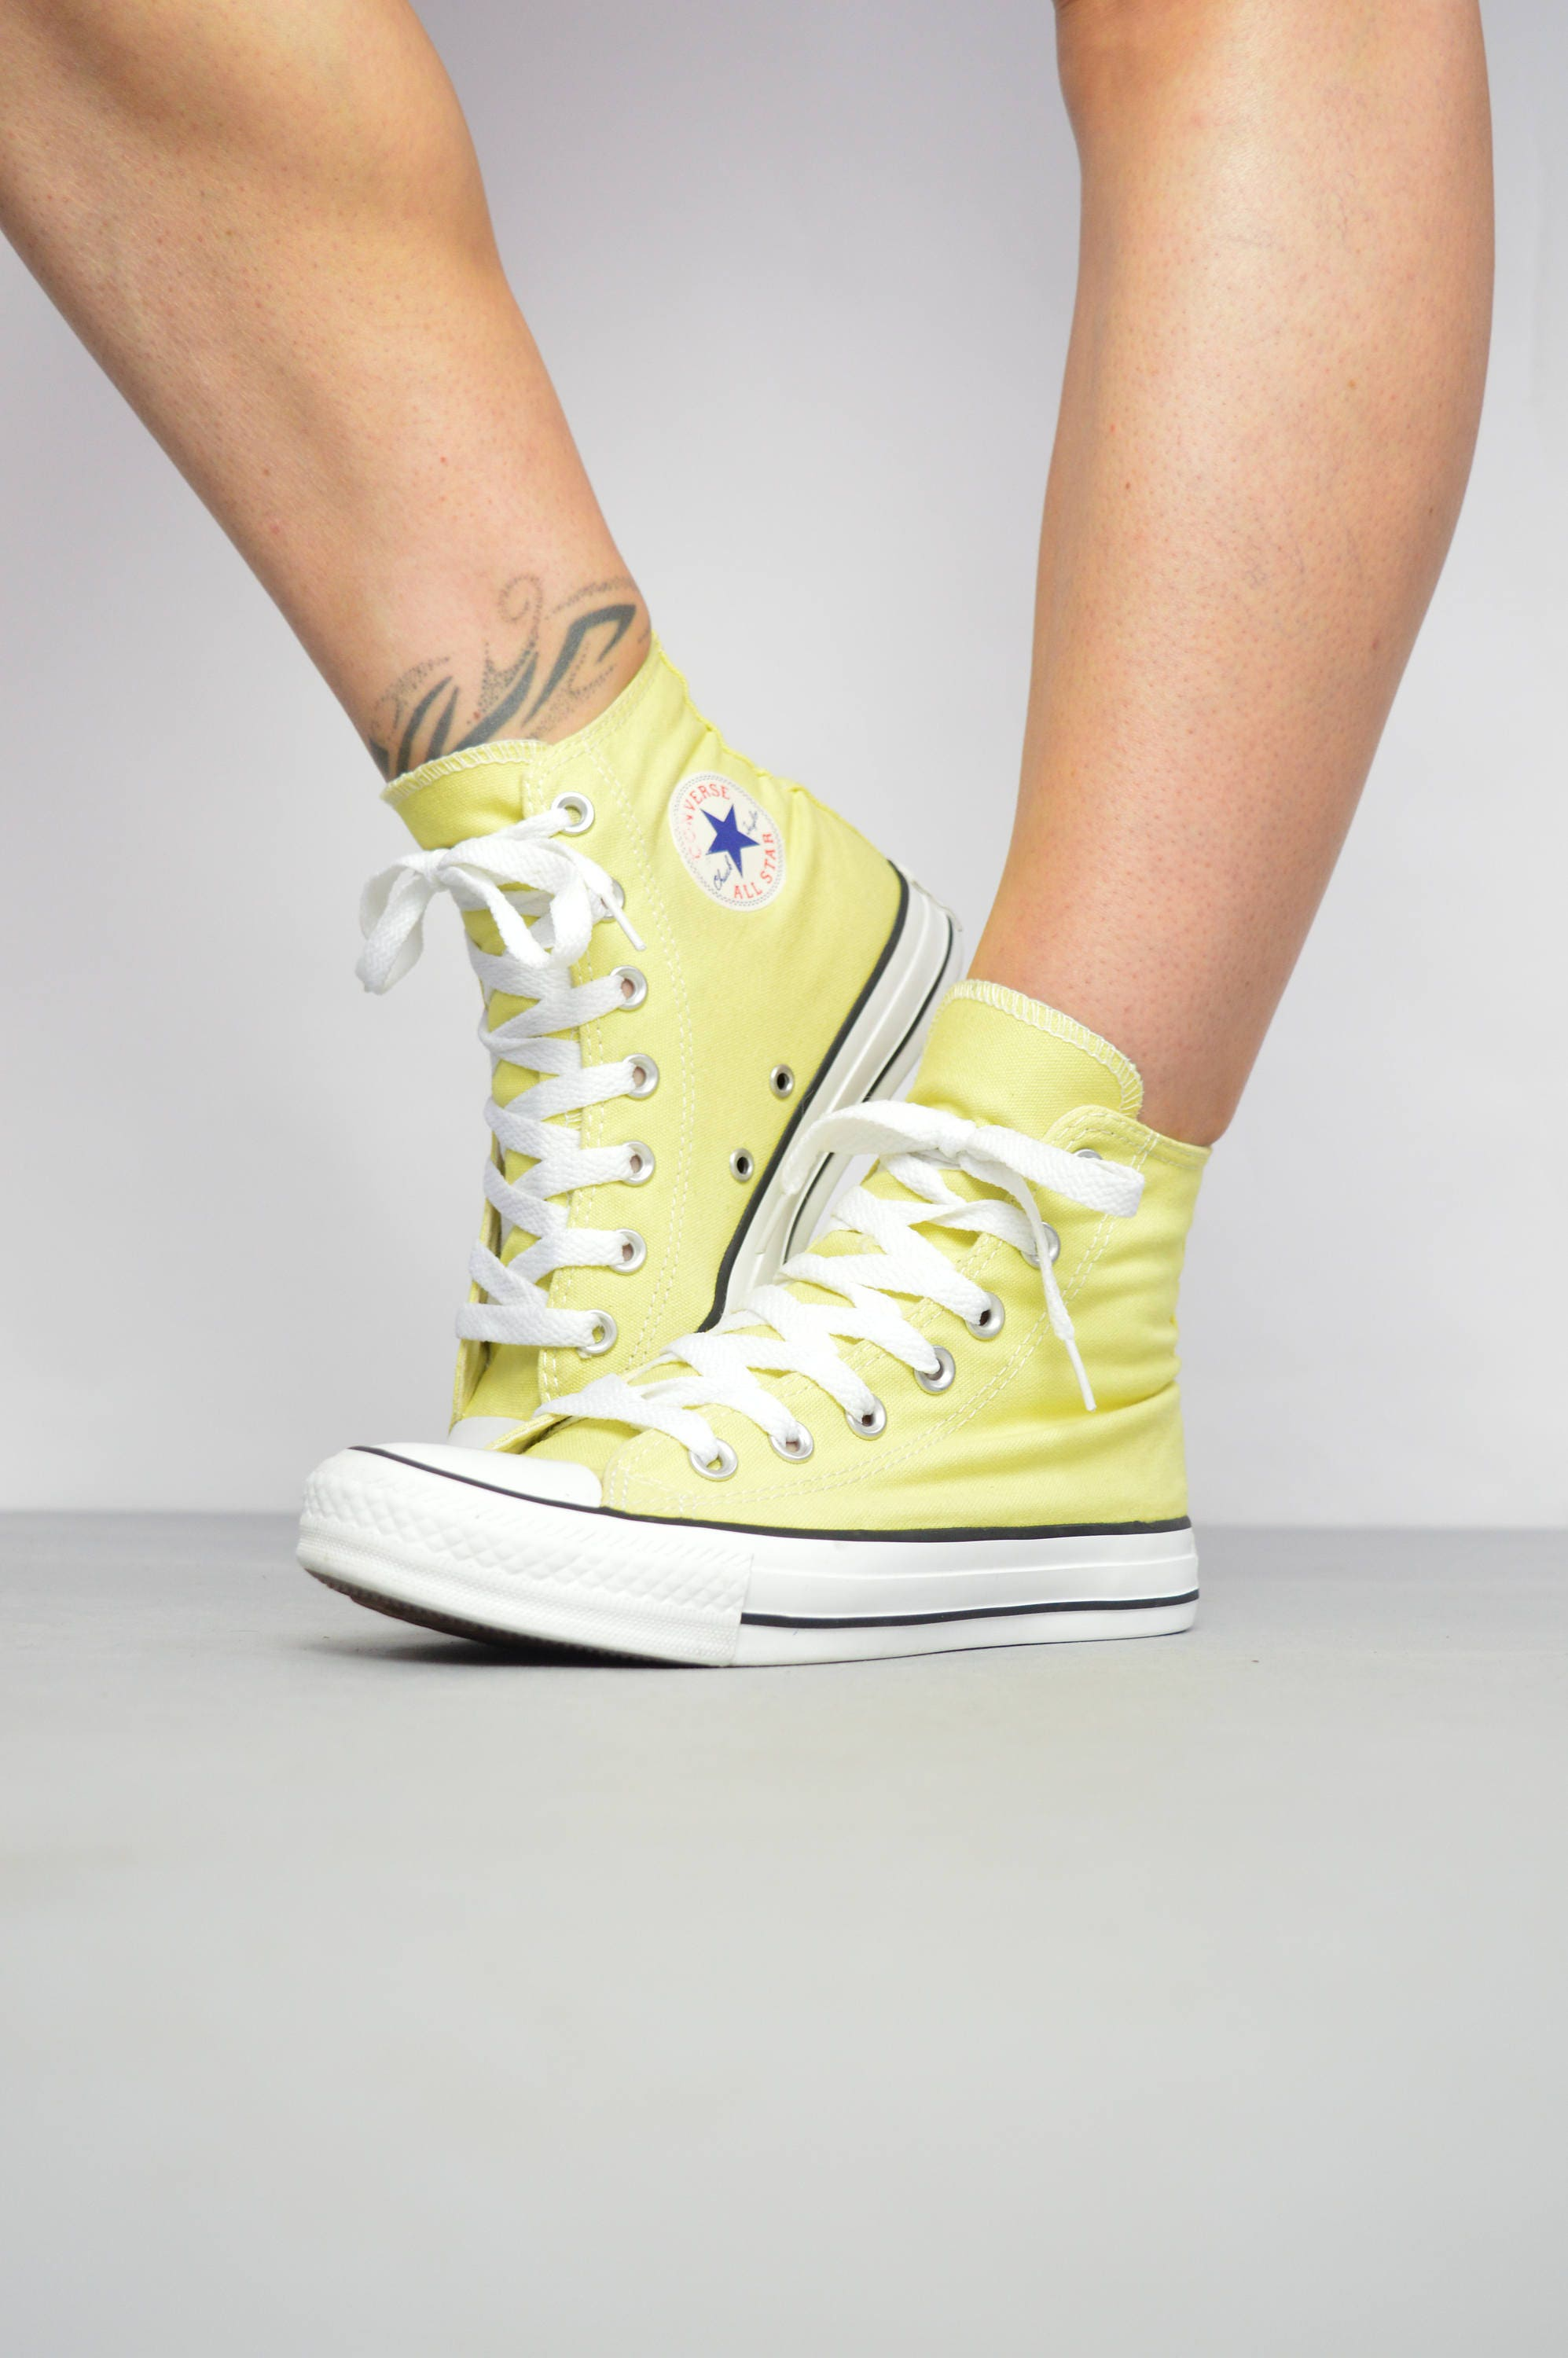 Vintage 90s Yellow Converse HiTops Chuck Taylor All Star Canvas Grunge Retro Preppy Label Size UK 4 EU 36.5 US Mens 4 Womens 6 cm 23